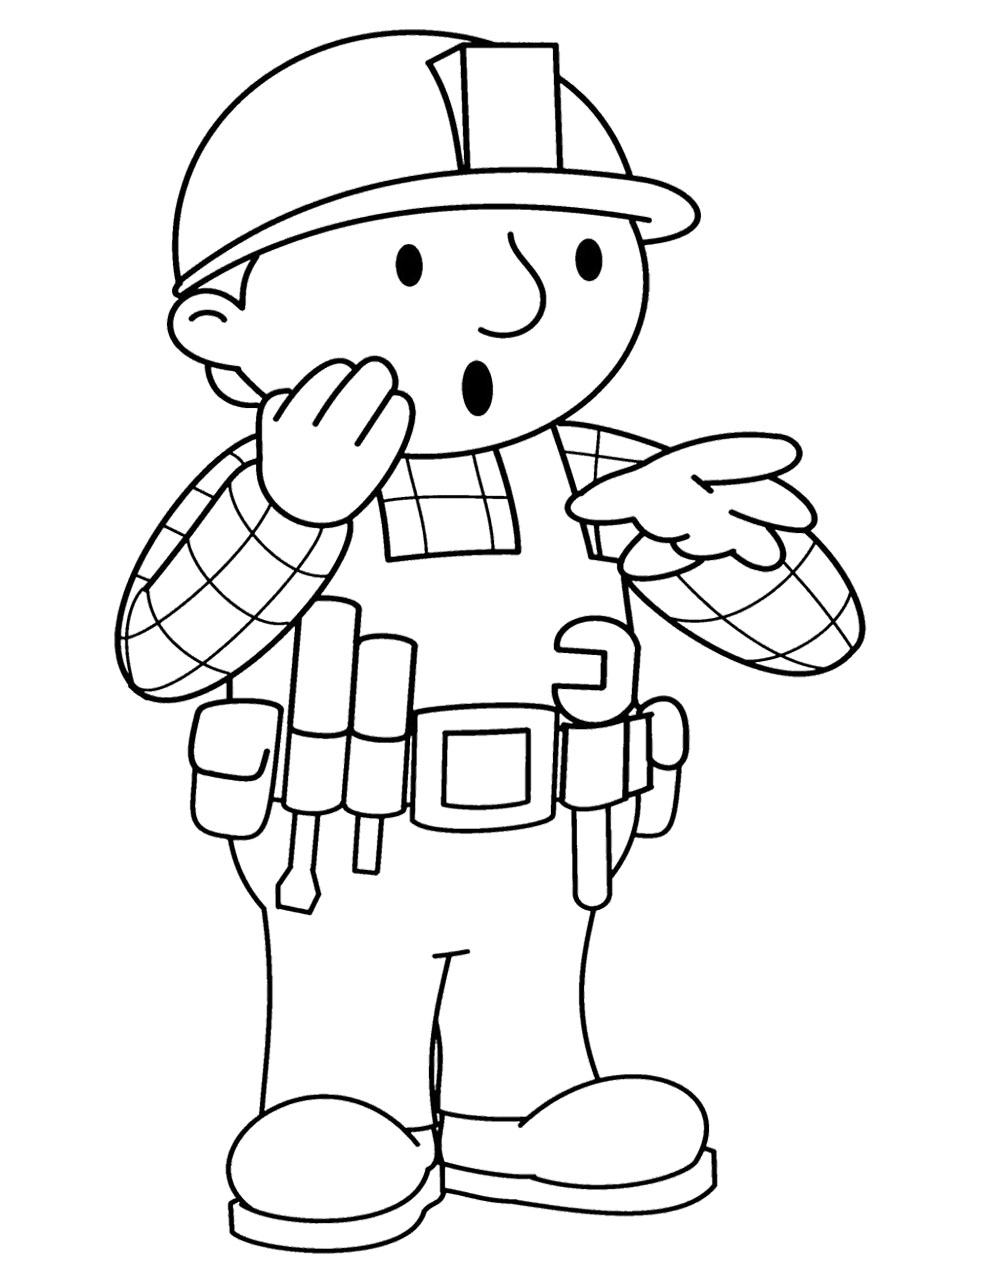 The Best 100+ Bob The Builder Coloring Pages Image Collections (www ...